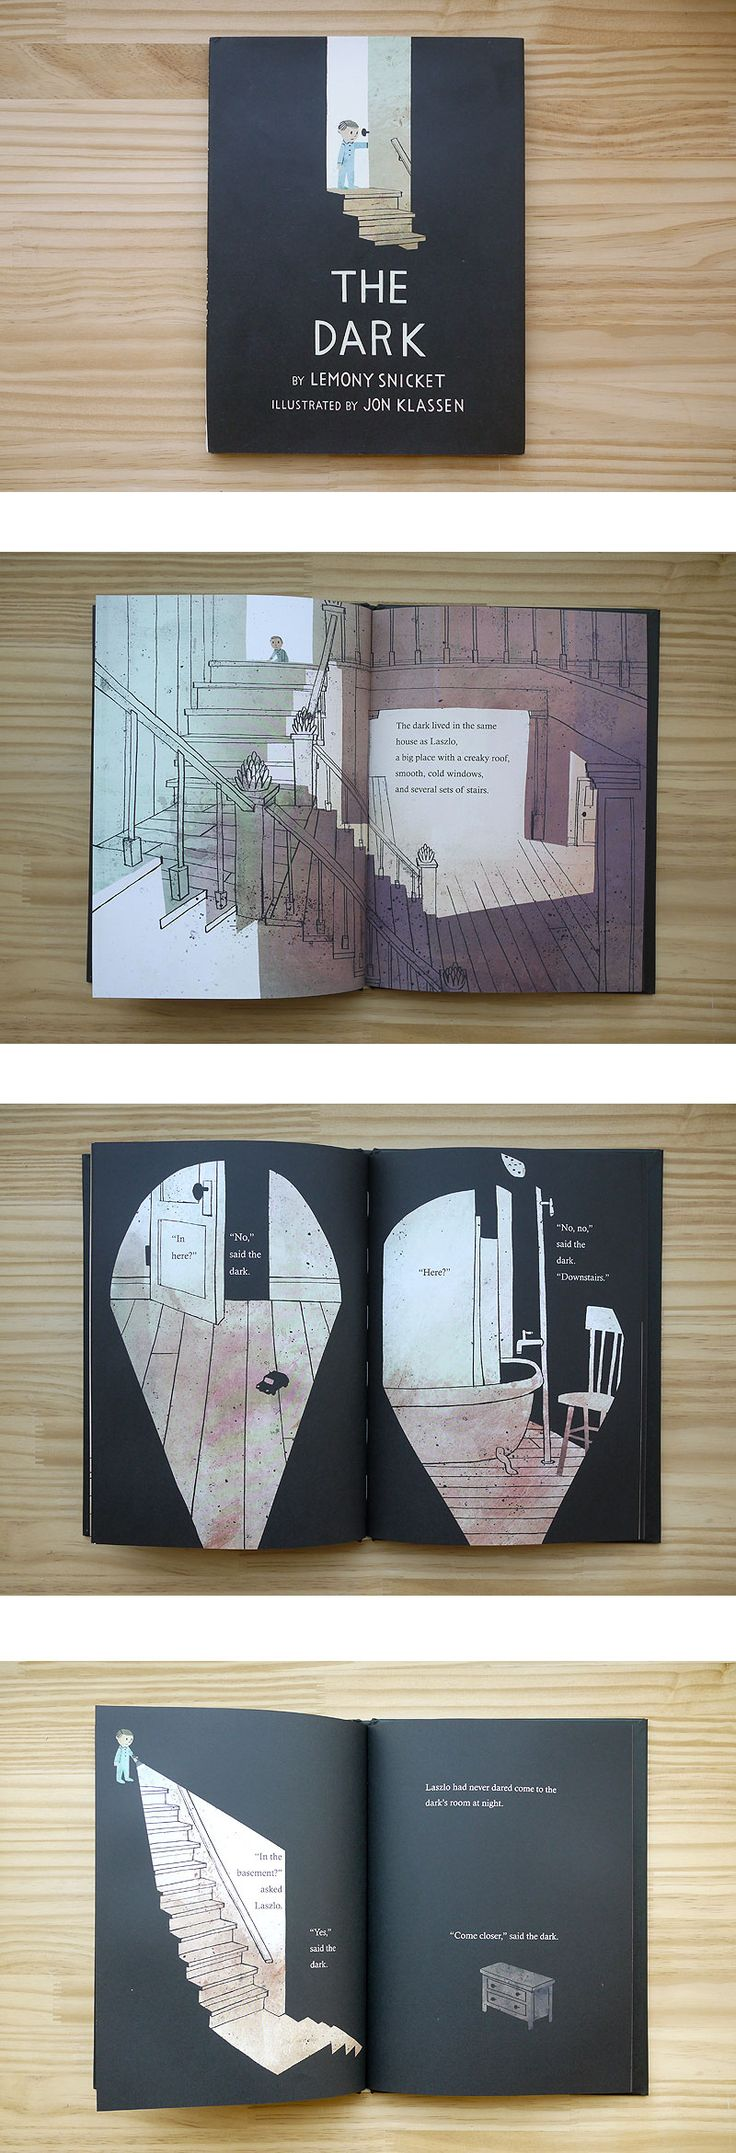 The Dark by Lemony Snicket, illustrated by Jon Klassen. Ive looked at this as Jon Klassen is a favourite children's book illustrator of mine, his work is child friendly but quite sophisticated in the overall look of the work he creates. In reference to the theme of my book being Pandoras Box, this book uses dark and light and the idea of fear in a child friendly way.